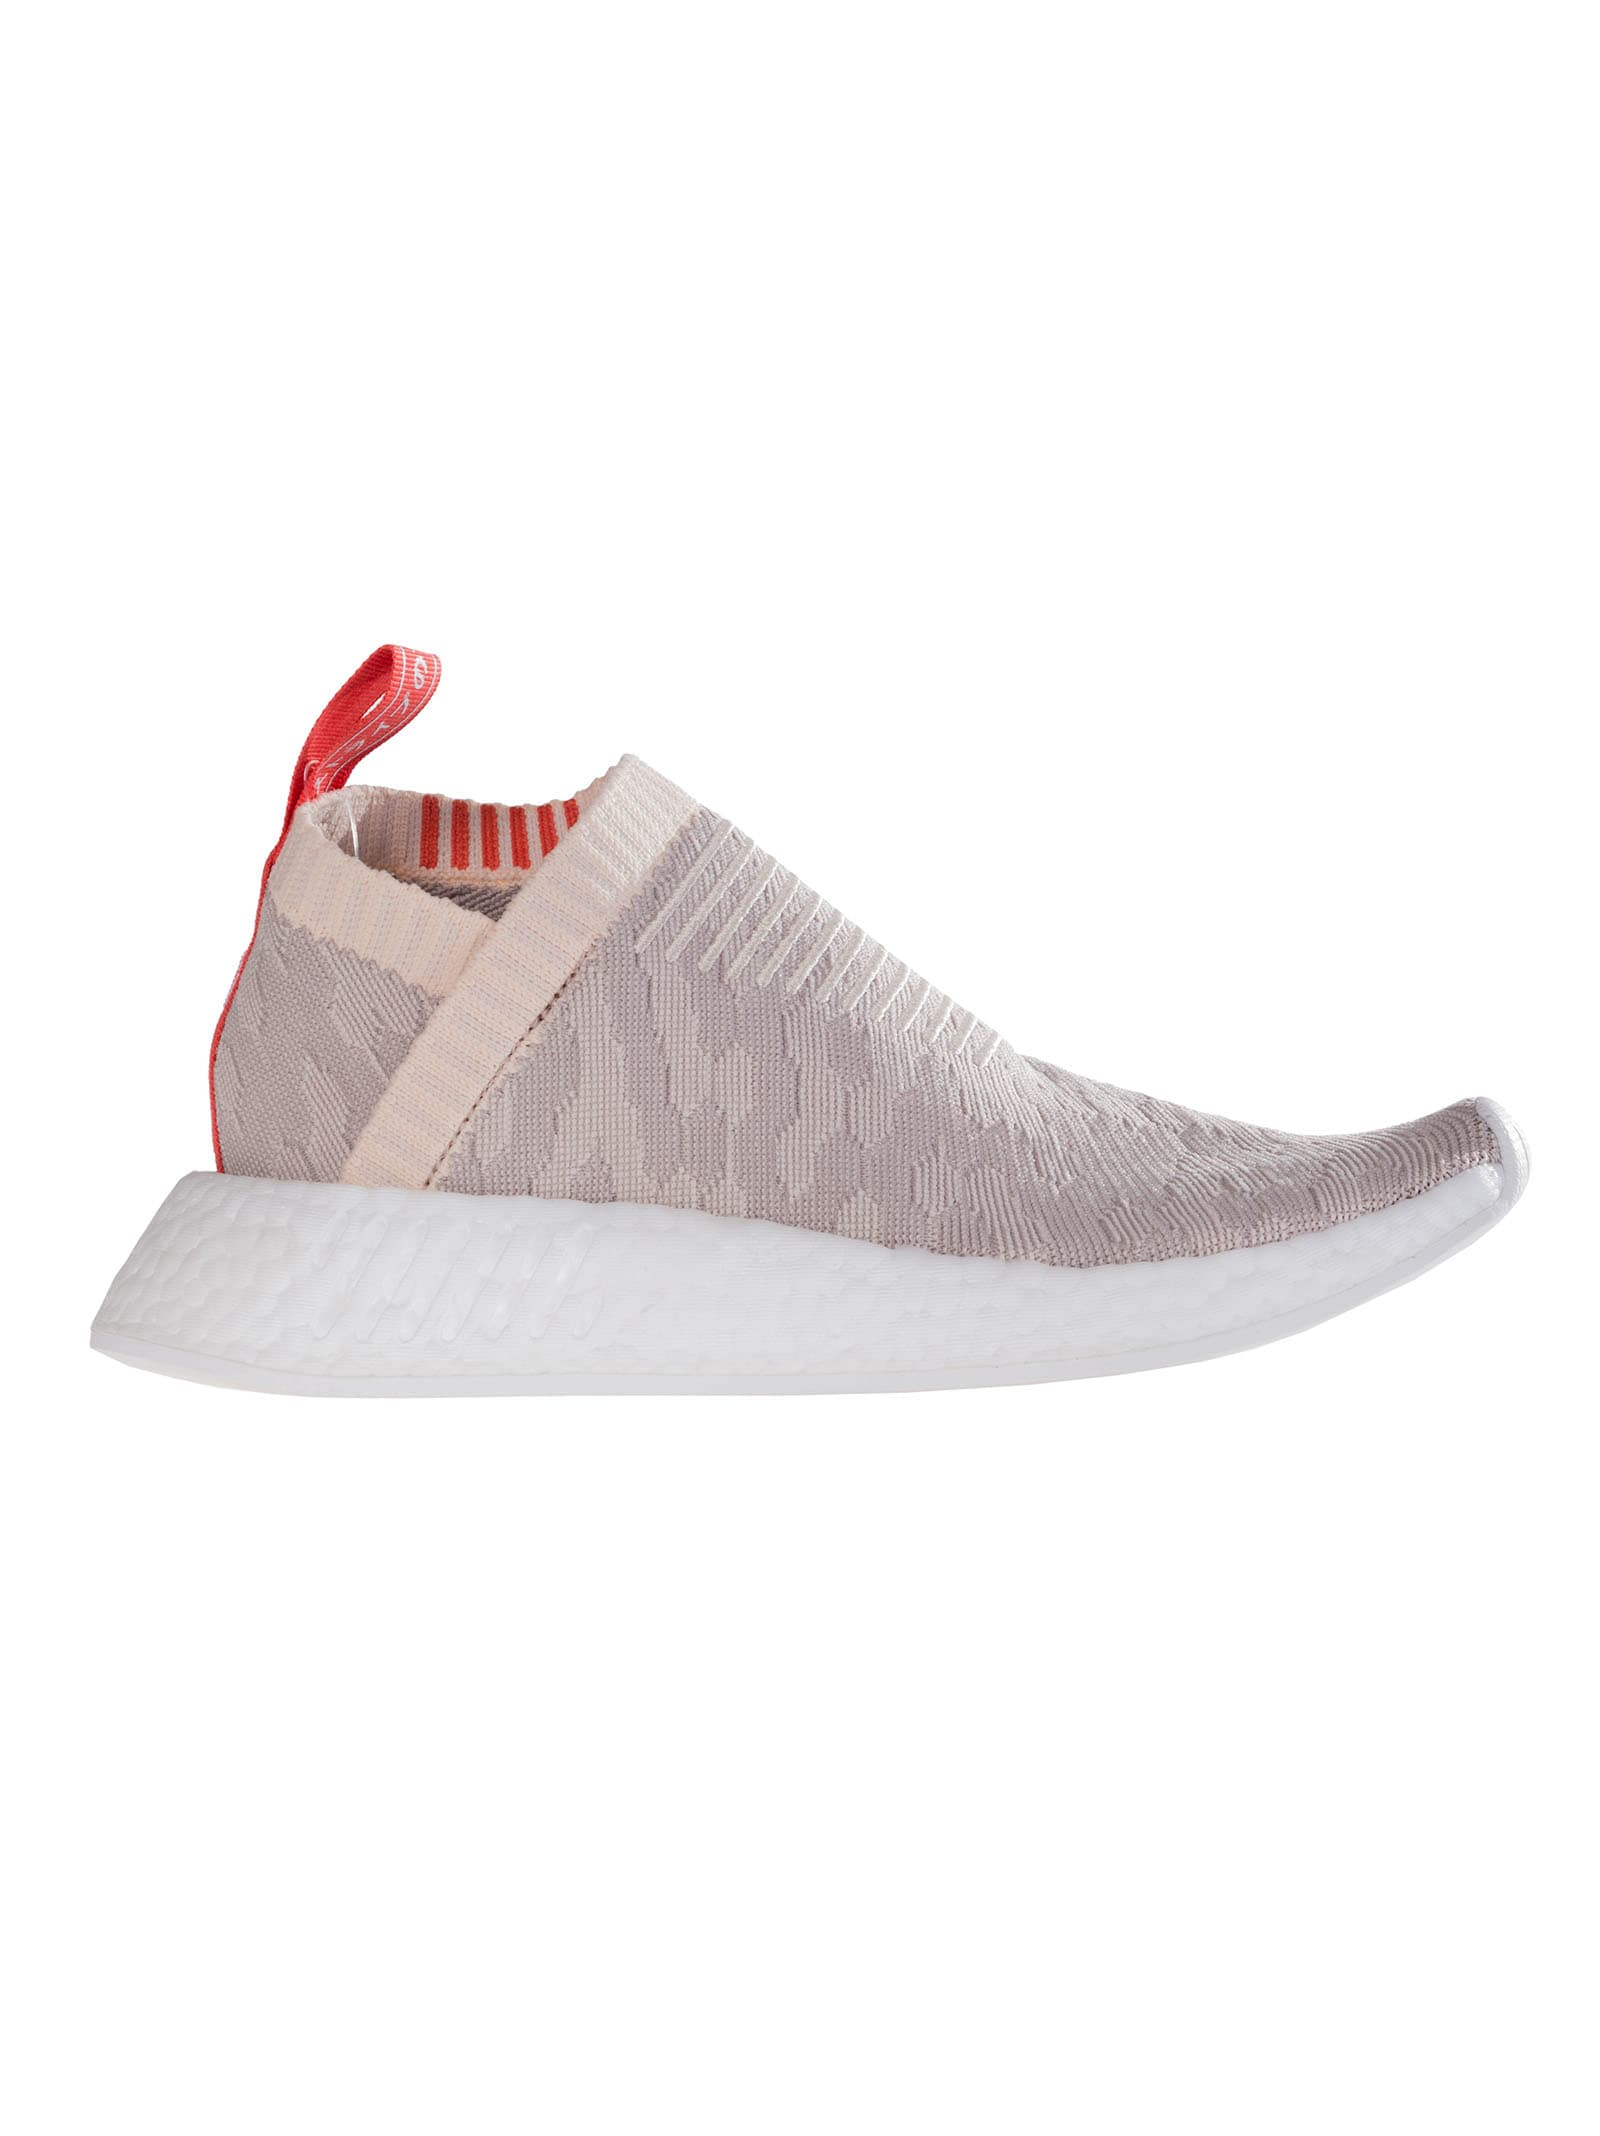 Best price on the market at italist | Adidas Adidas Nmd Cs2 Primeknit Sneakers